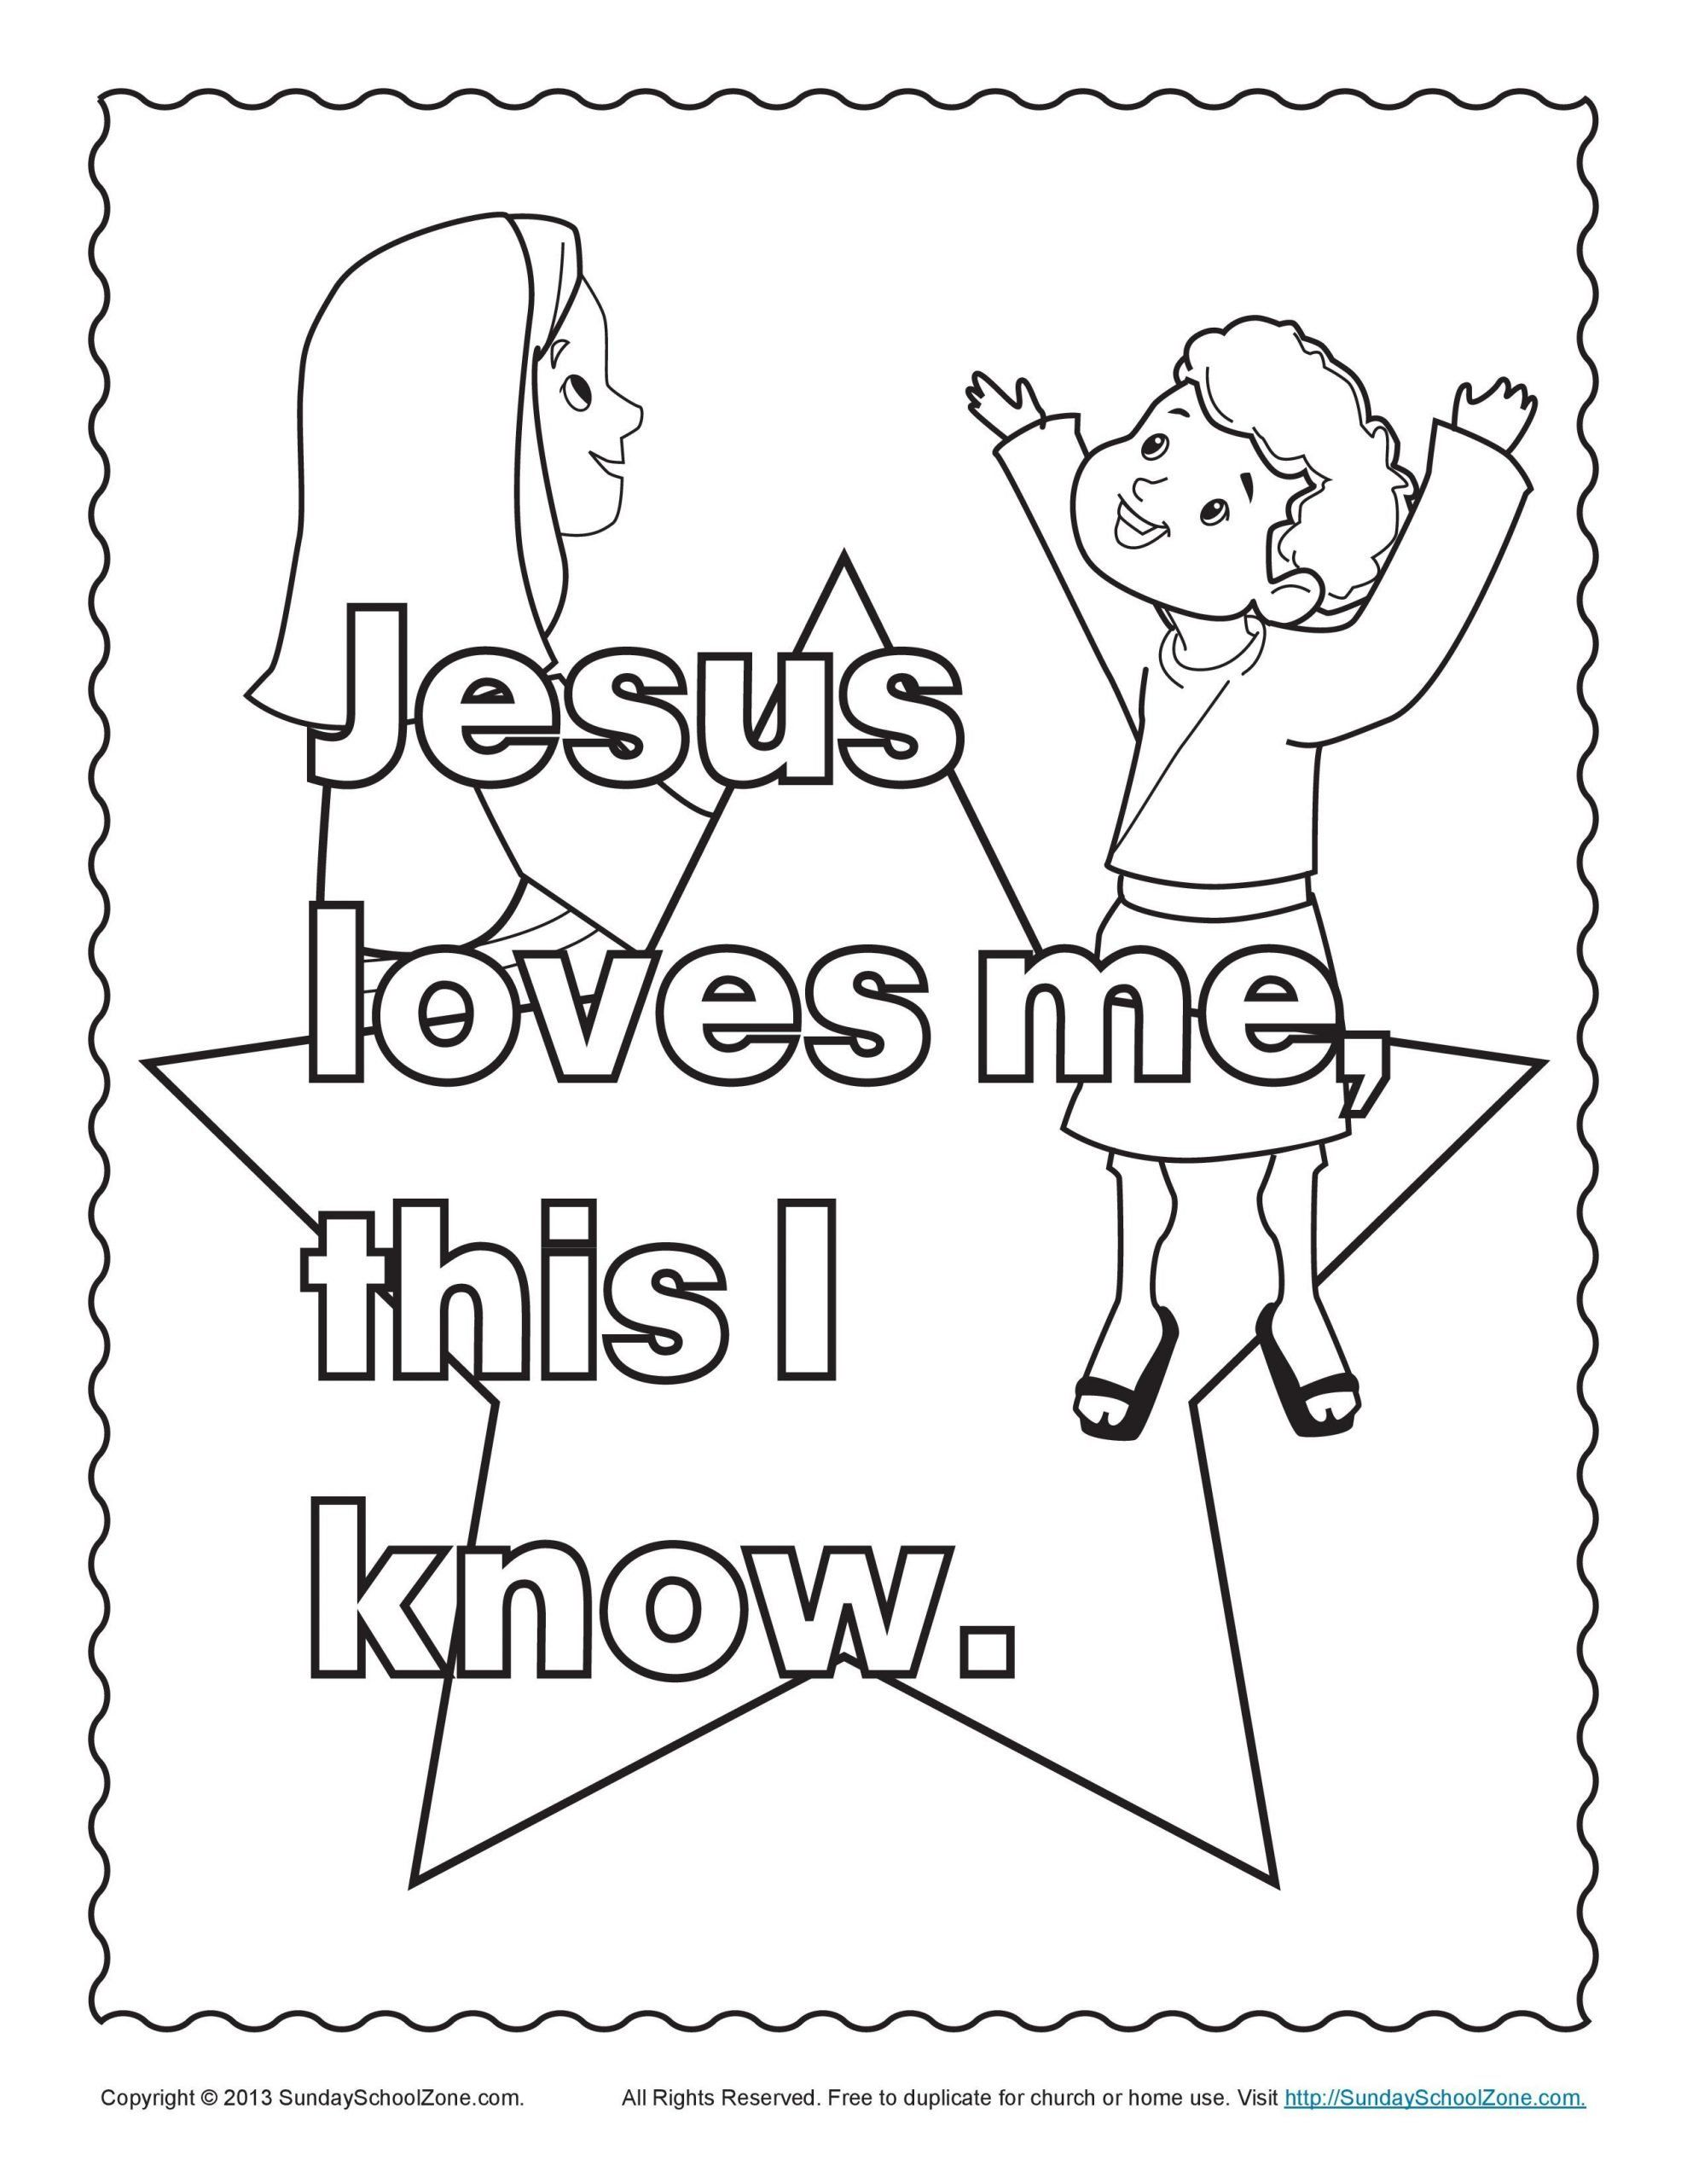 Bible Coloring Pages For Kids Bible Coloring Pages For Kids Jesus Coloring Pages Sunday School Coloring Pages Bible Coloring Pages